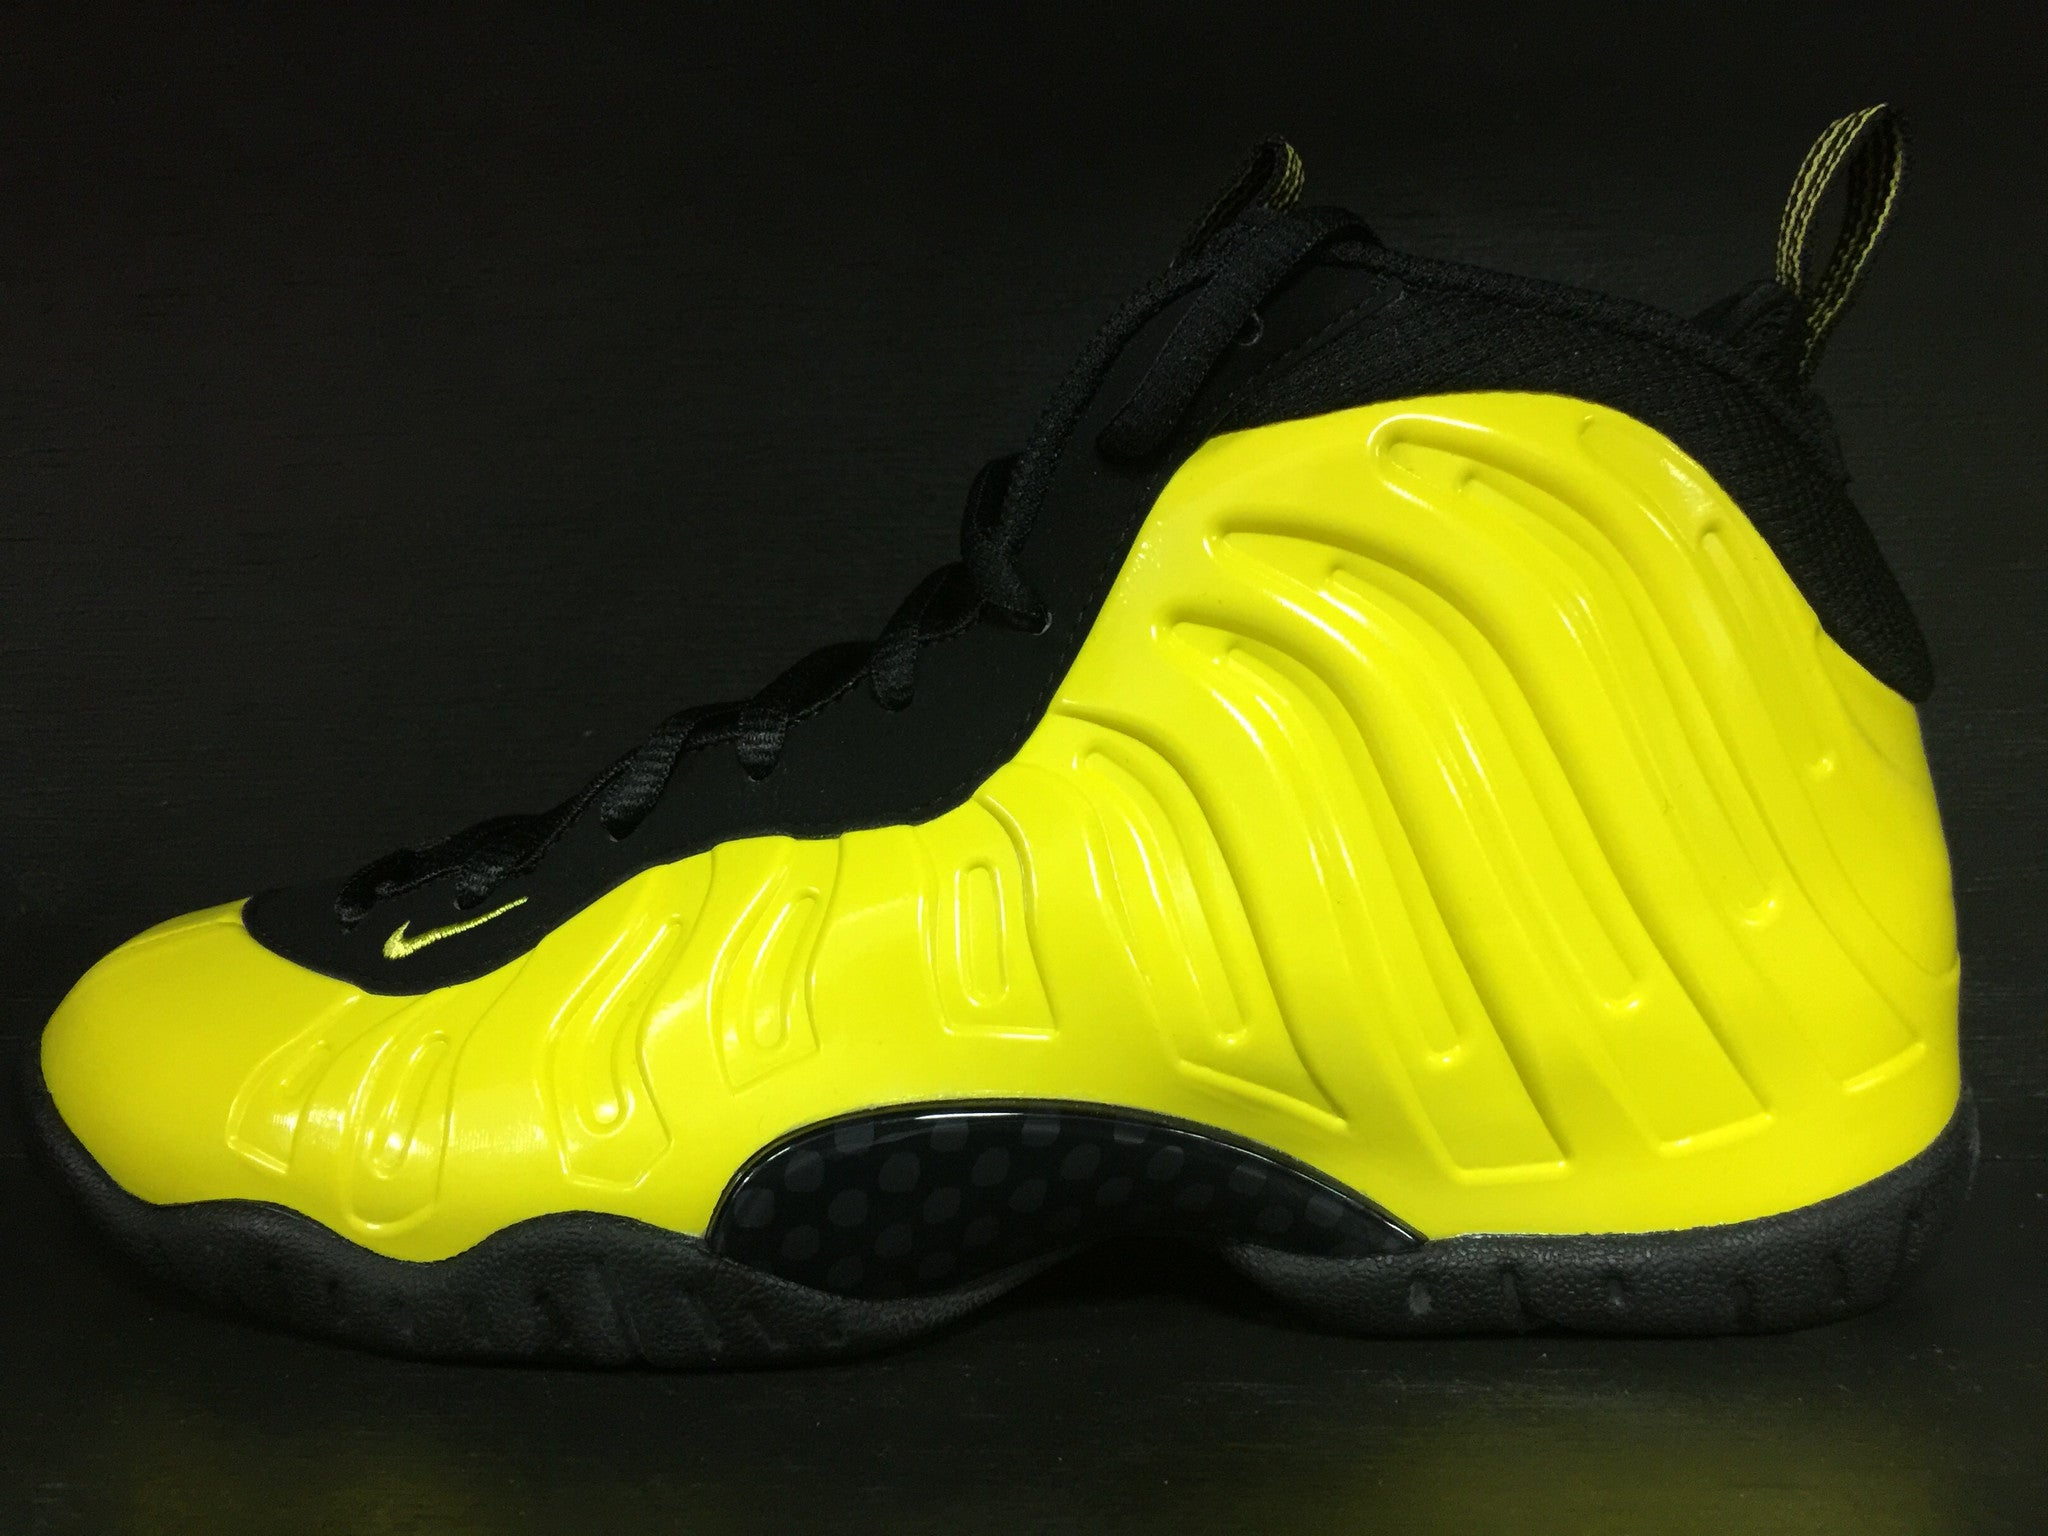 Nike Air Foamposite One 'Optic Yellow' GS